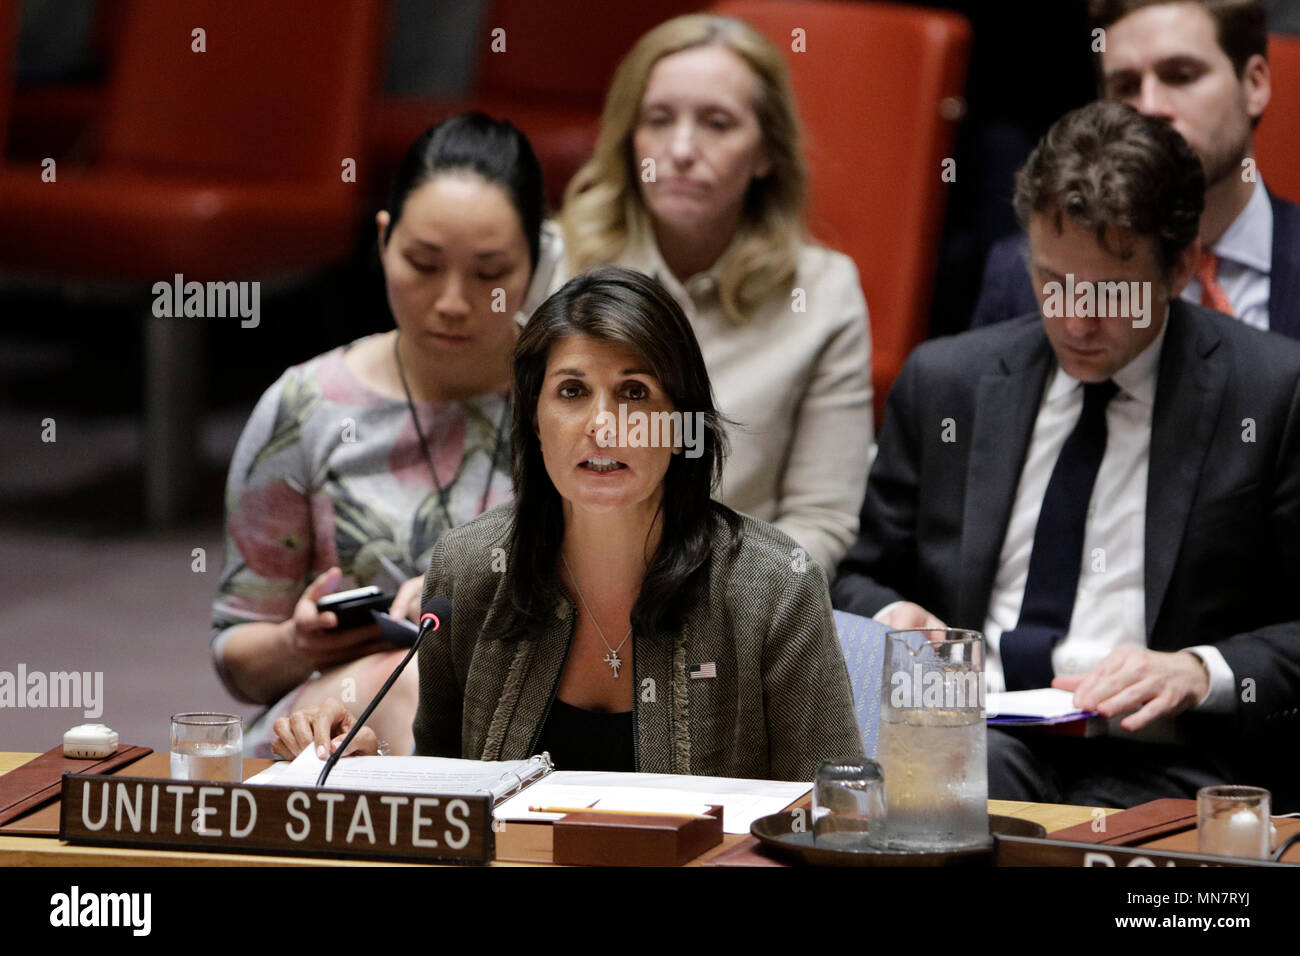 Unied Nations, UN headquarters in New York. 14th May, 2018. U.S. Permanent Representative to the United Nations Nikki Haley (front) speaks during the Security Council meeting on its mission to Bangladesh and Myanmar, at the UN headquarters in New York, May 14, 2018. Credit: Li Muzi/Xinhua/Alamy Live News - Stock Image